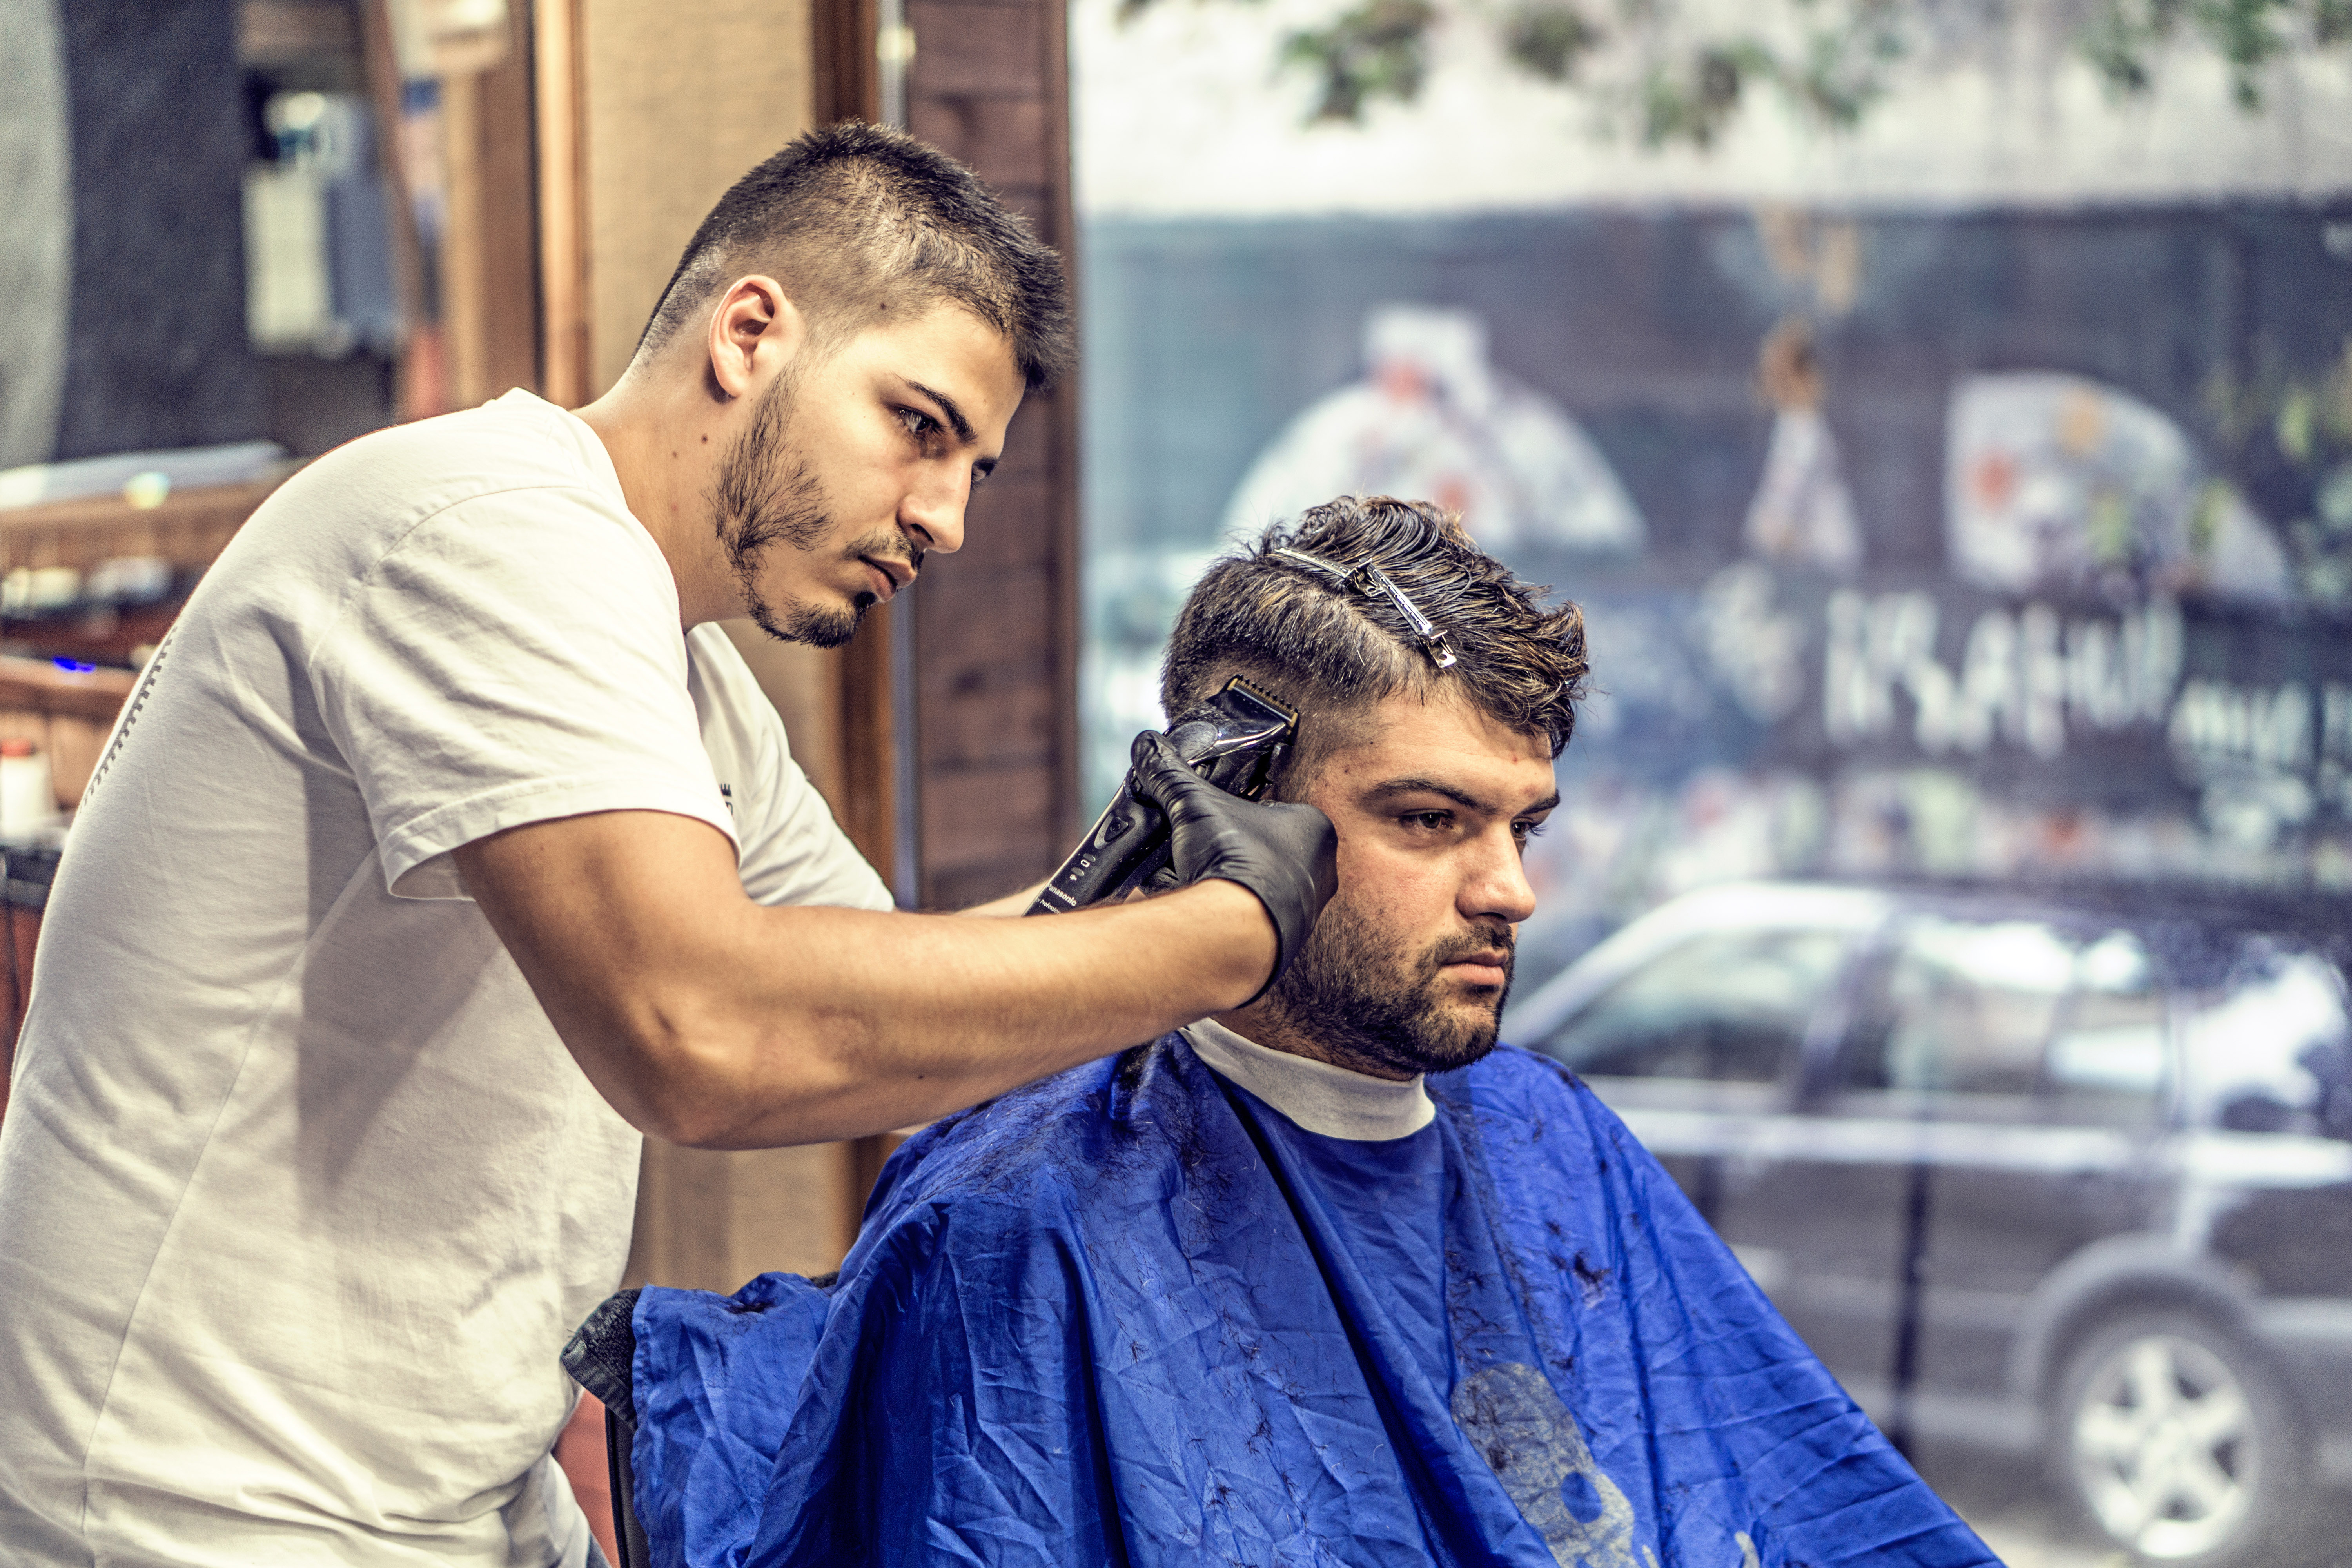 Free Stock Photo Of Barber Giving A Haircut Public Domain Photo - Hairstyle barbershop indonesia